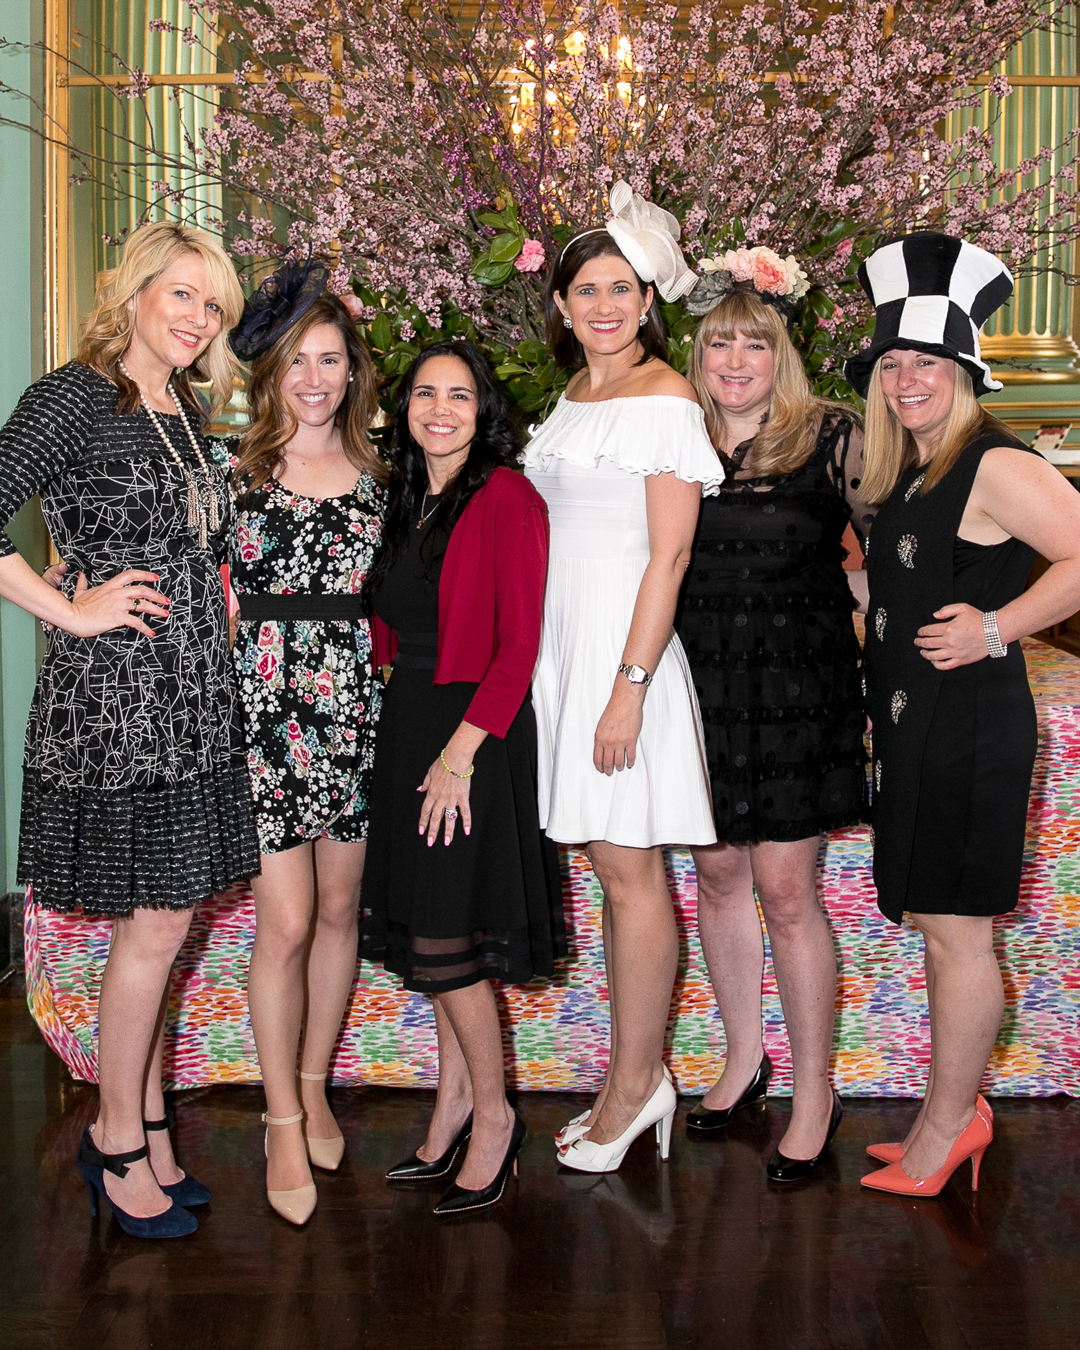 The Junior League of San Francisco Sustainer Council. Thanks to our Sustainer Vice President, Renee Goldstein (on my right) and all of these other amazing ladies on their support of this event and joining us for the tea.